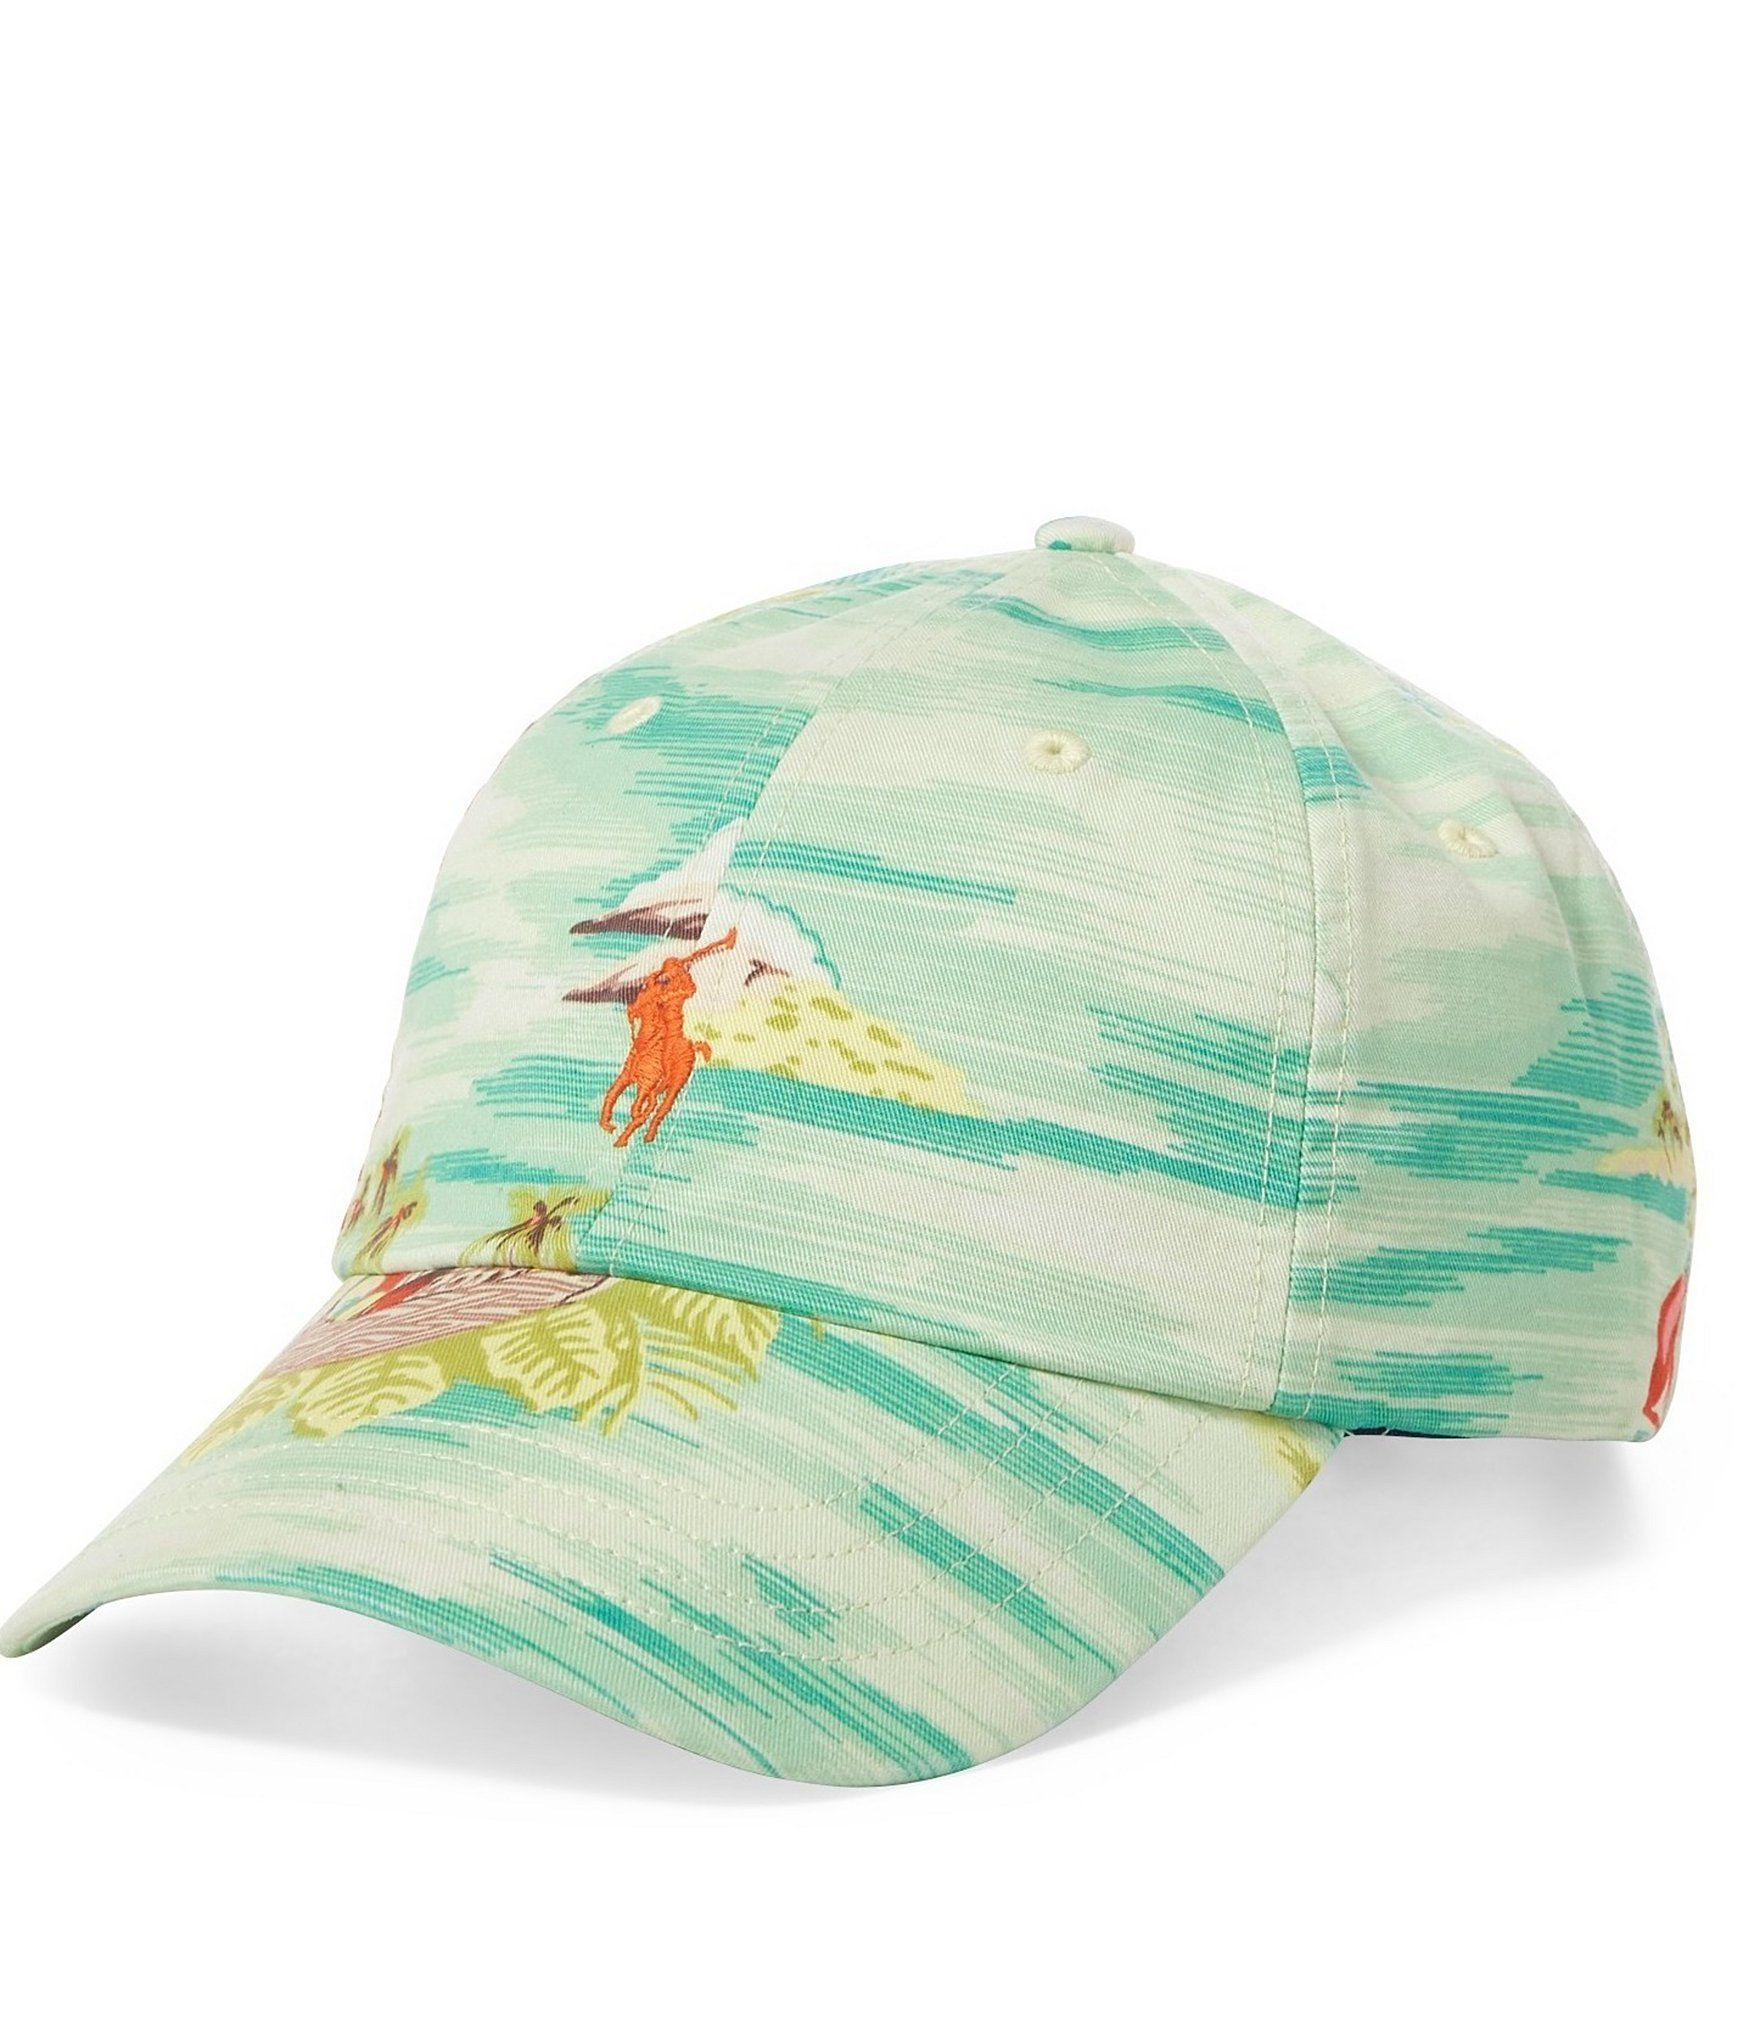 1785f63aa Shop for Polo Ralph Lauren Hawaiian Print Stretch Chino Baseball Cap at  Dillards.com. Visit Dillards.com to find clothing